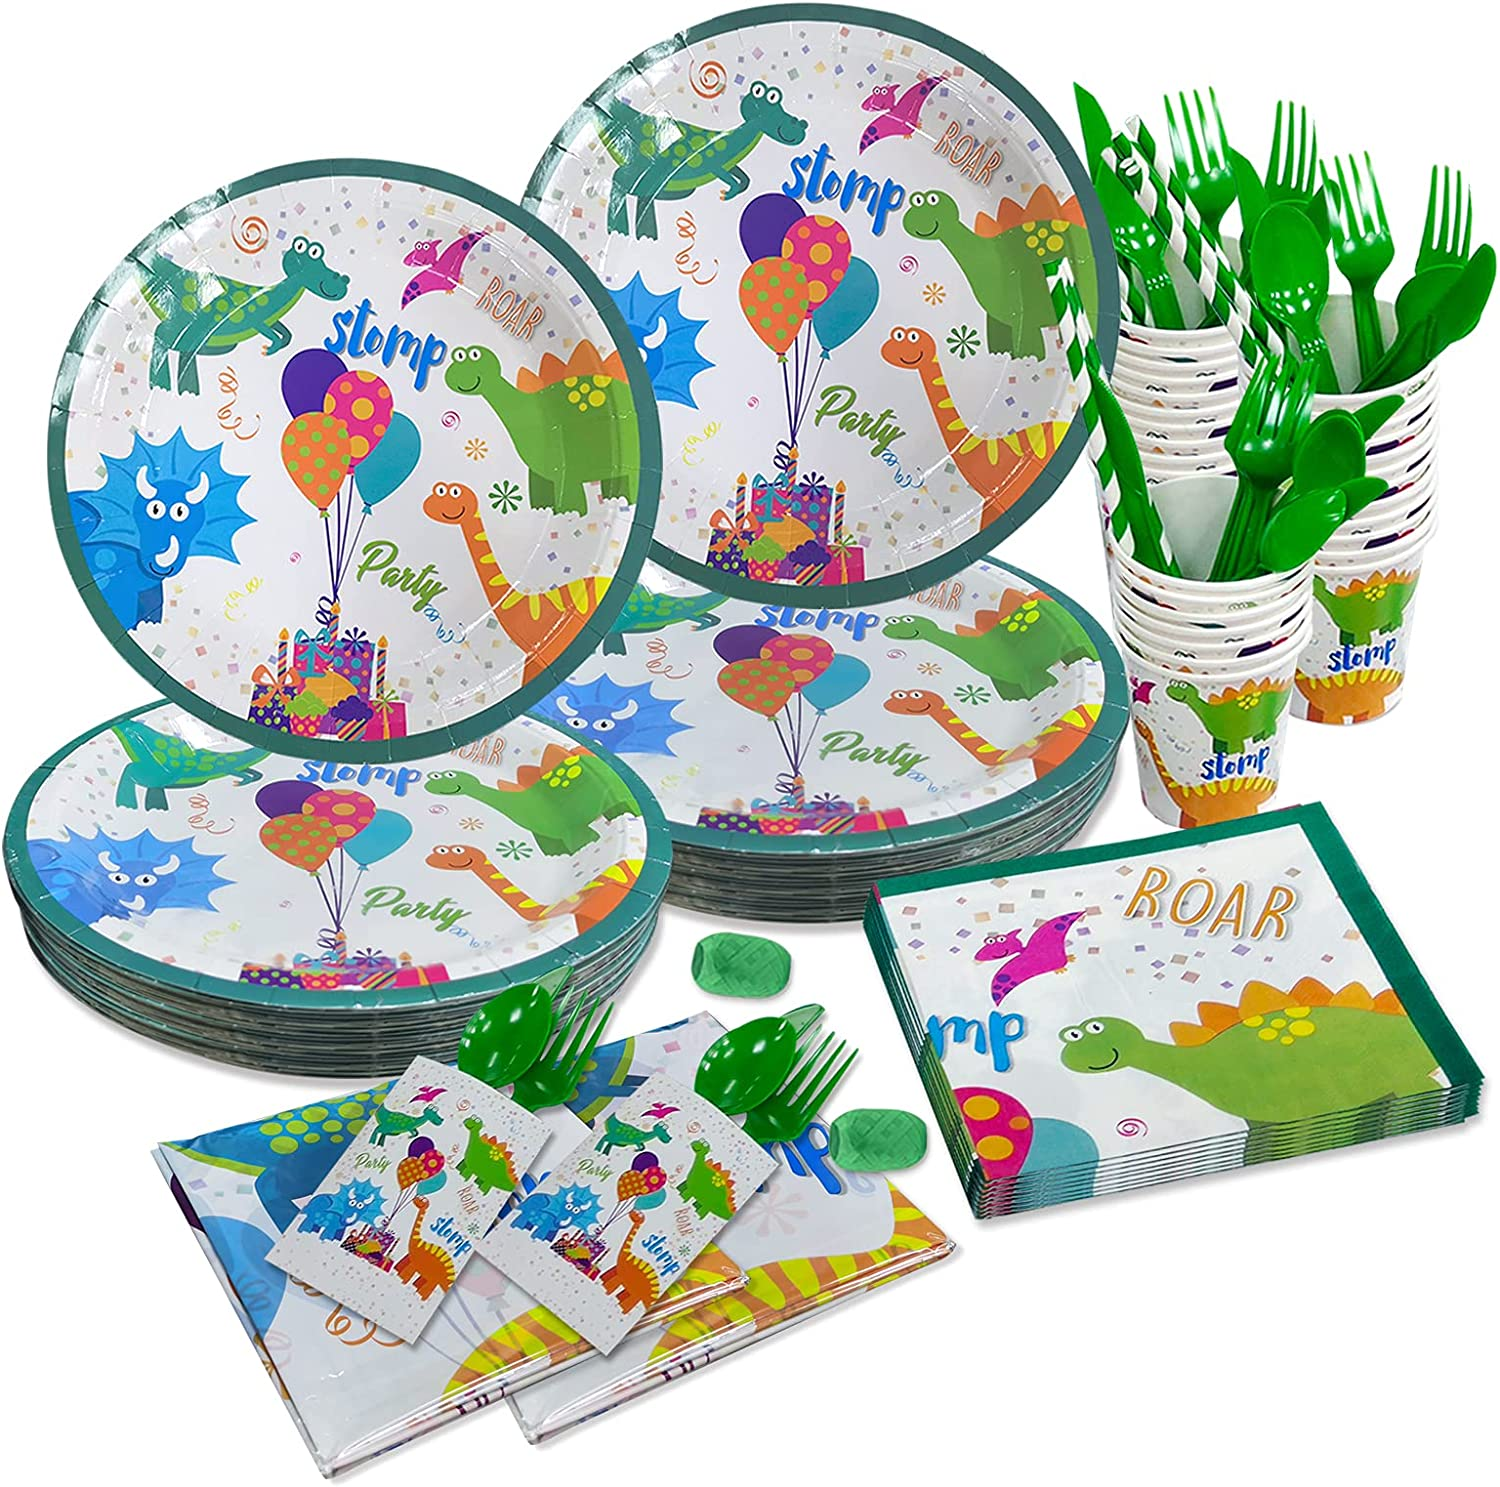 All-in-One Dinosaur Party Supplies, Dinosaur Party Plates, Napki